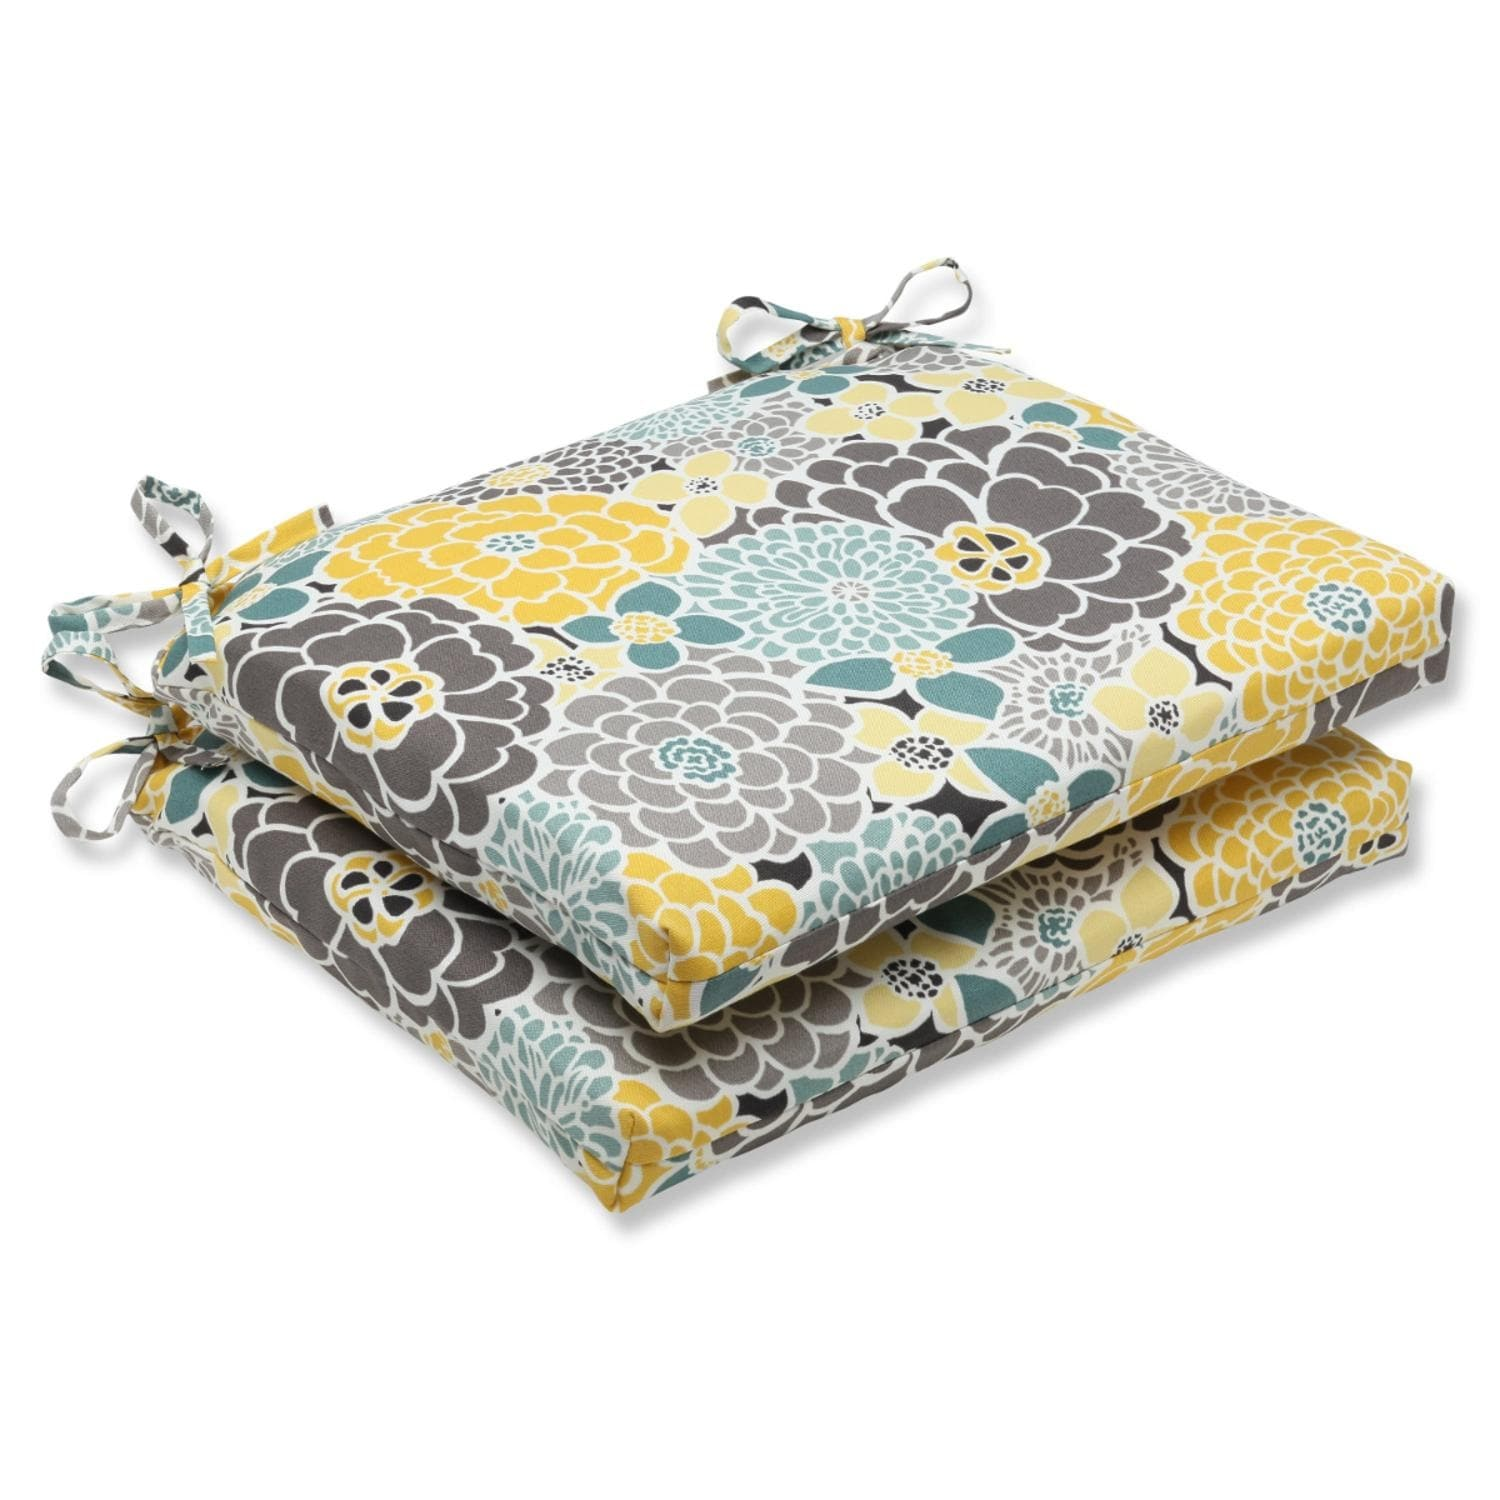 set of 2 yellow blue and gray flor grande decorative outdoor patio chair cushions 18 5 yellow